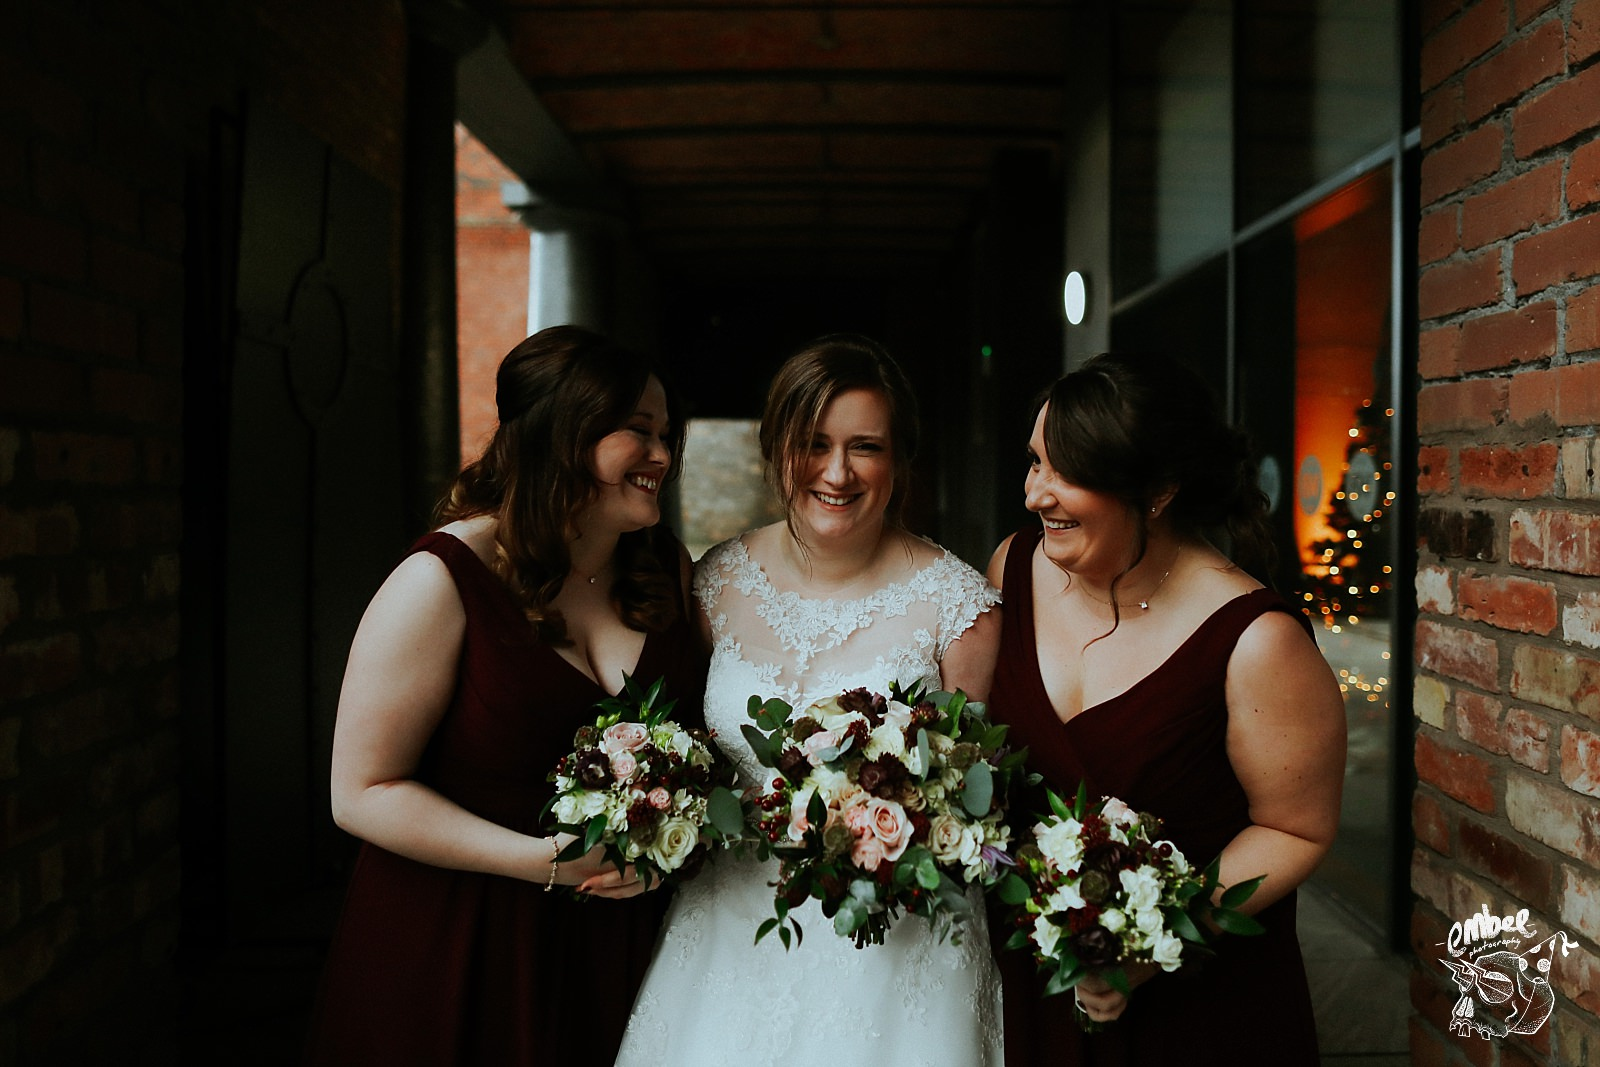 bride and bridesmaids holding flowers